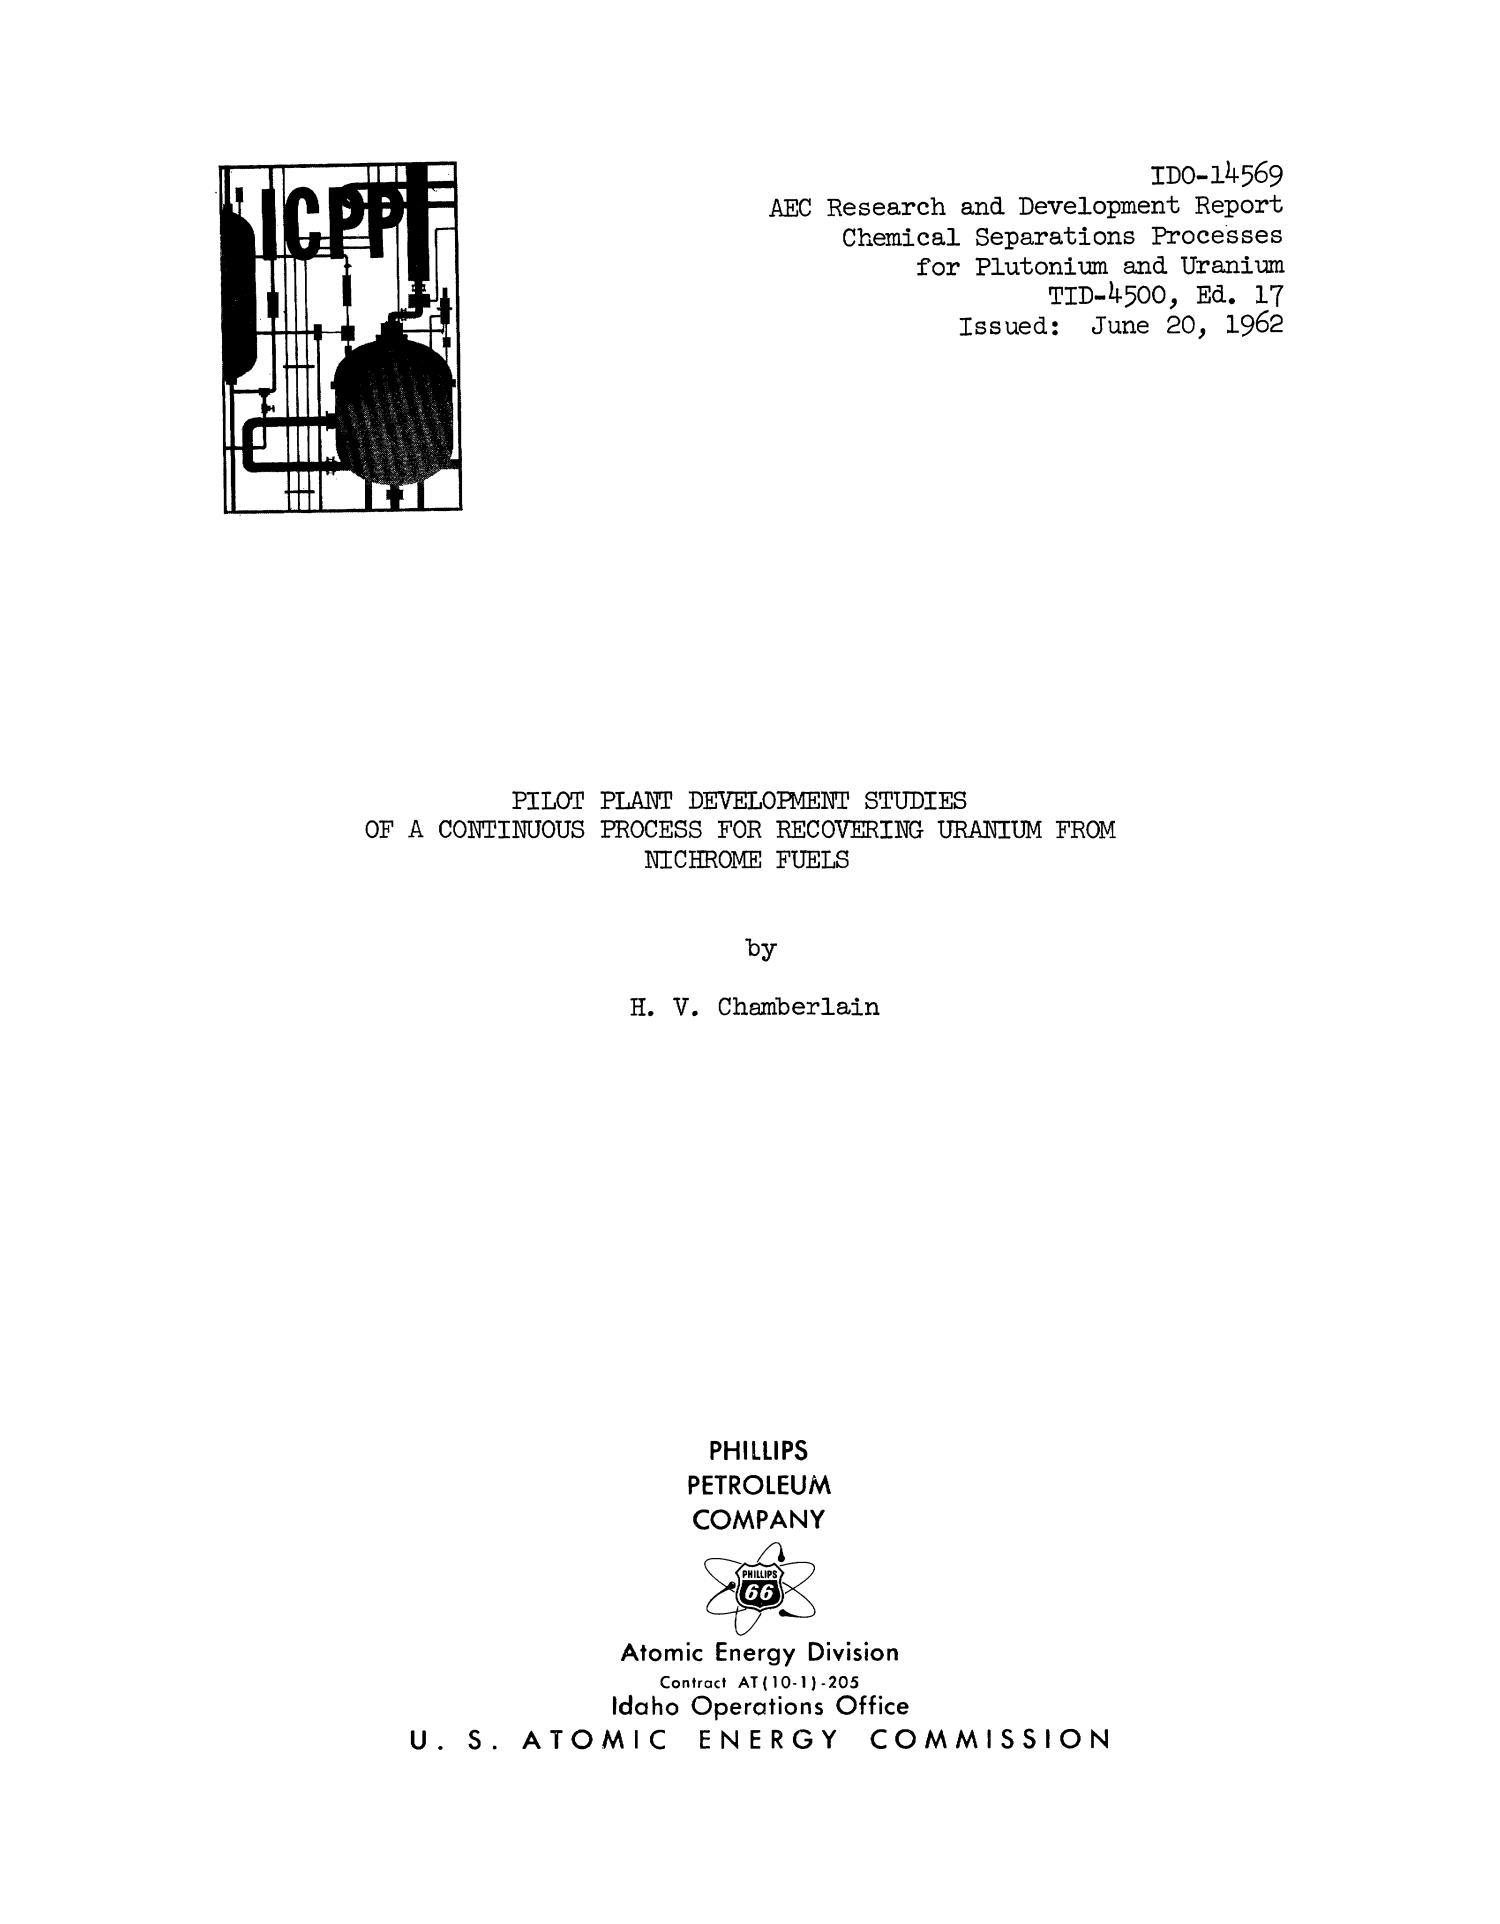 Pilot Plant Development Studies of a Continuous Process for Recovering Uranium from Nichrome Fuels                                                                                                      Title Page